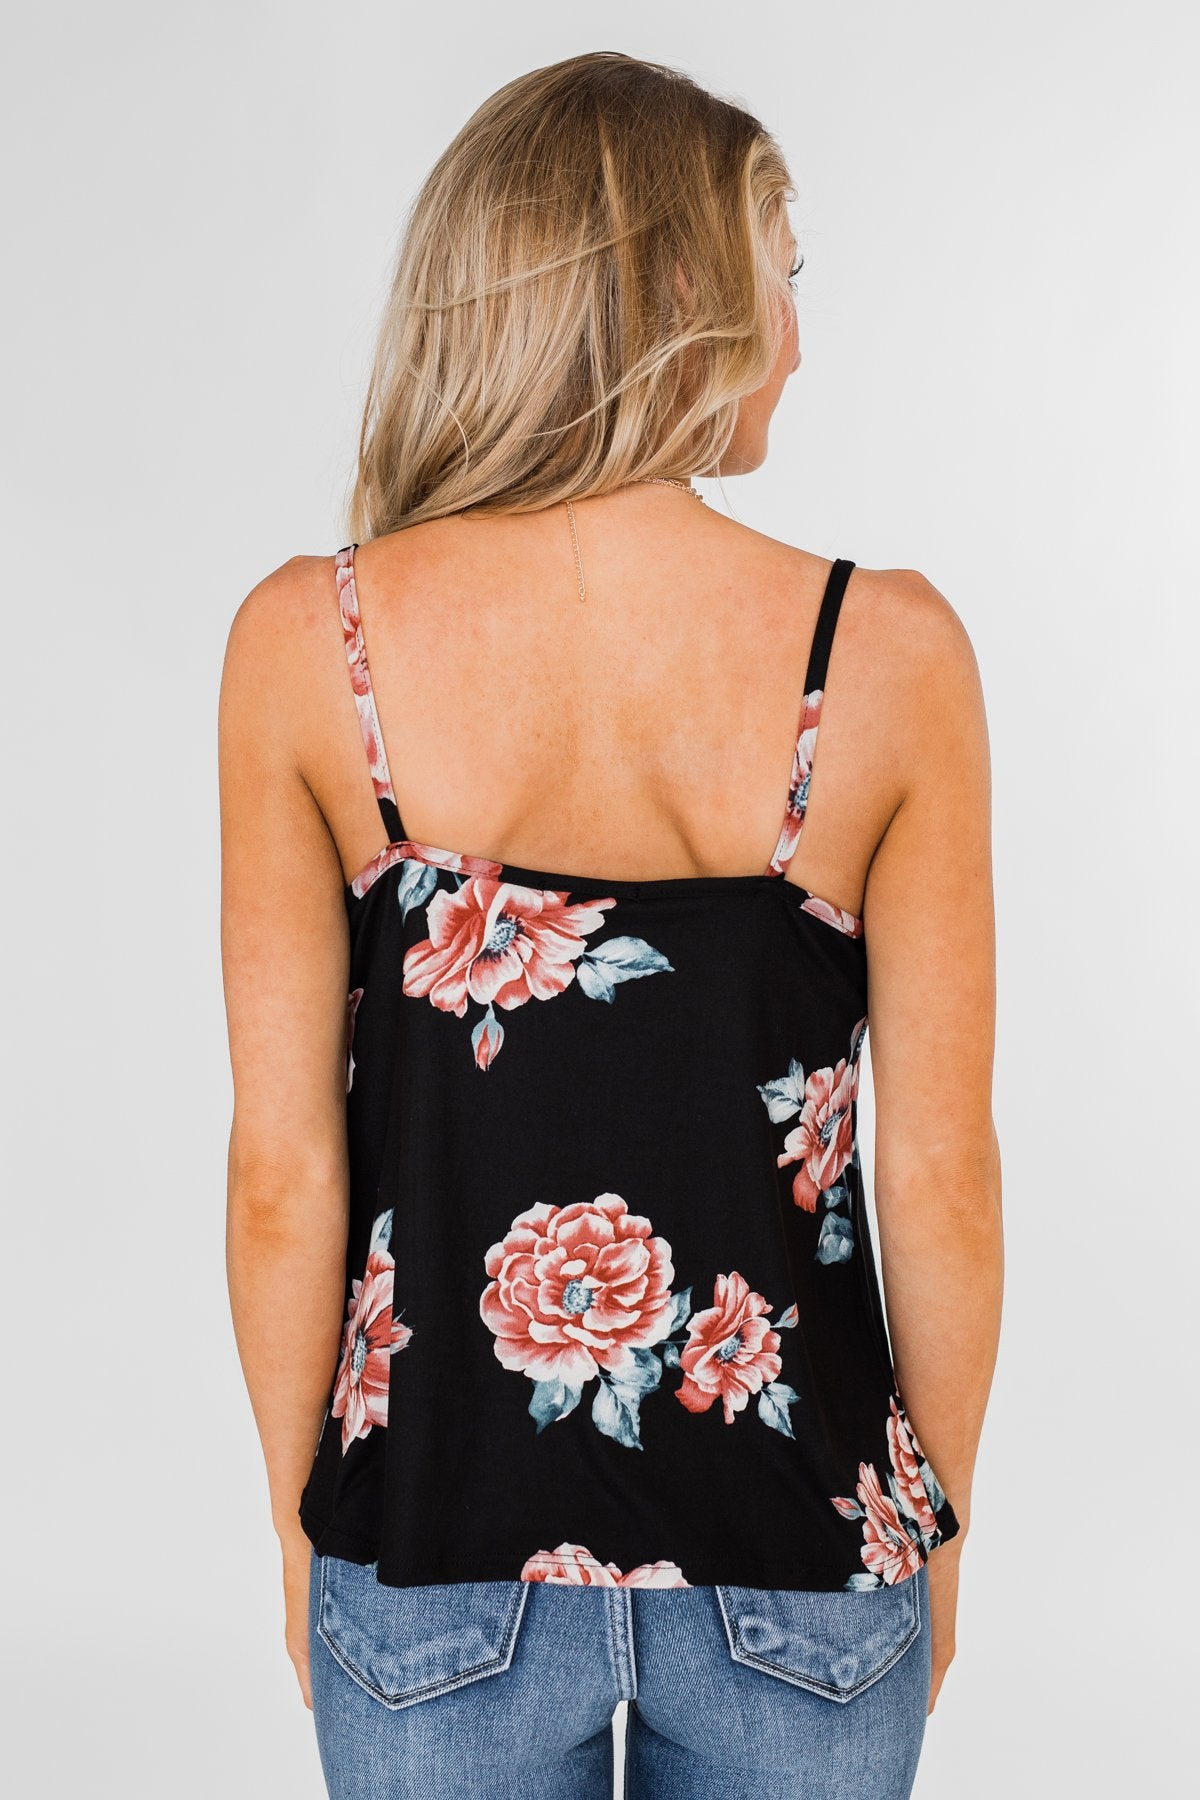 Floral Drape Neck Tank Top- Black